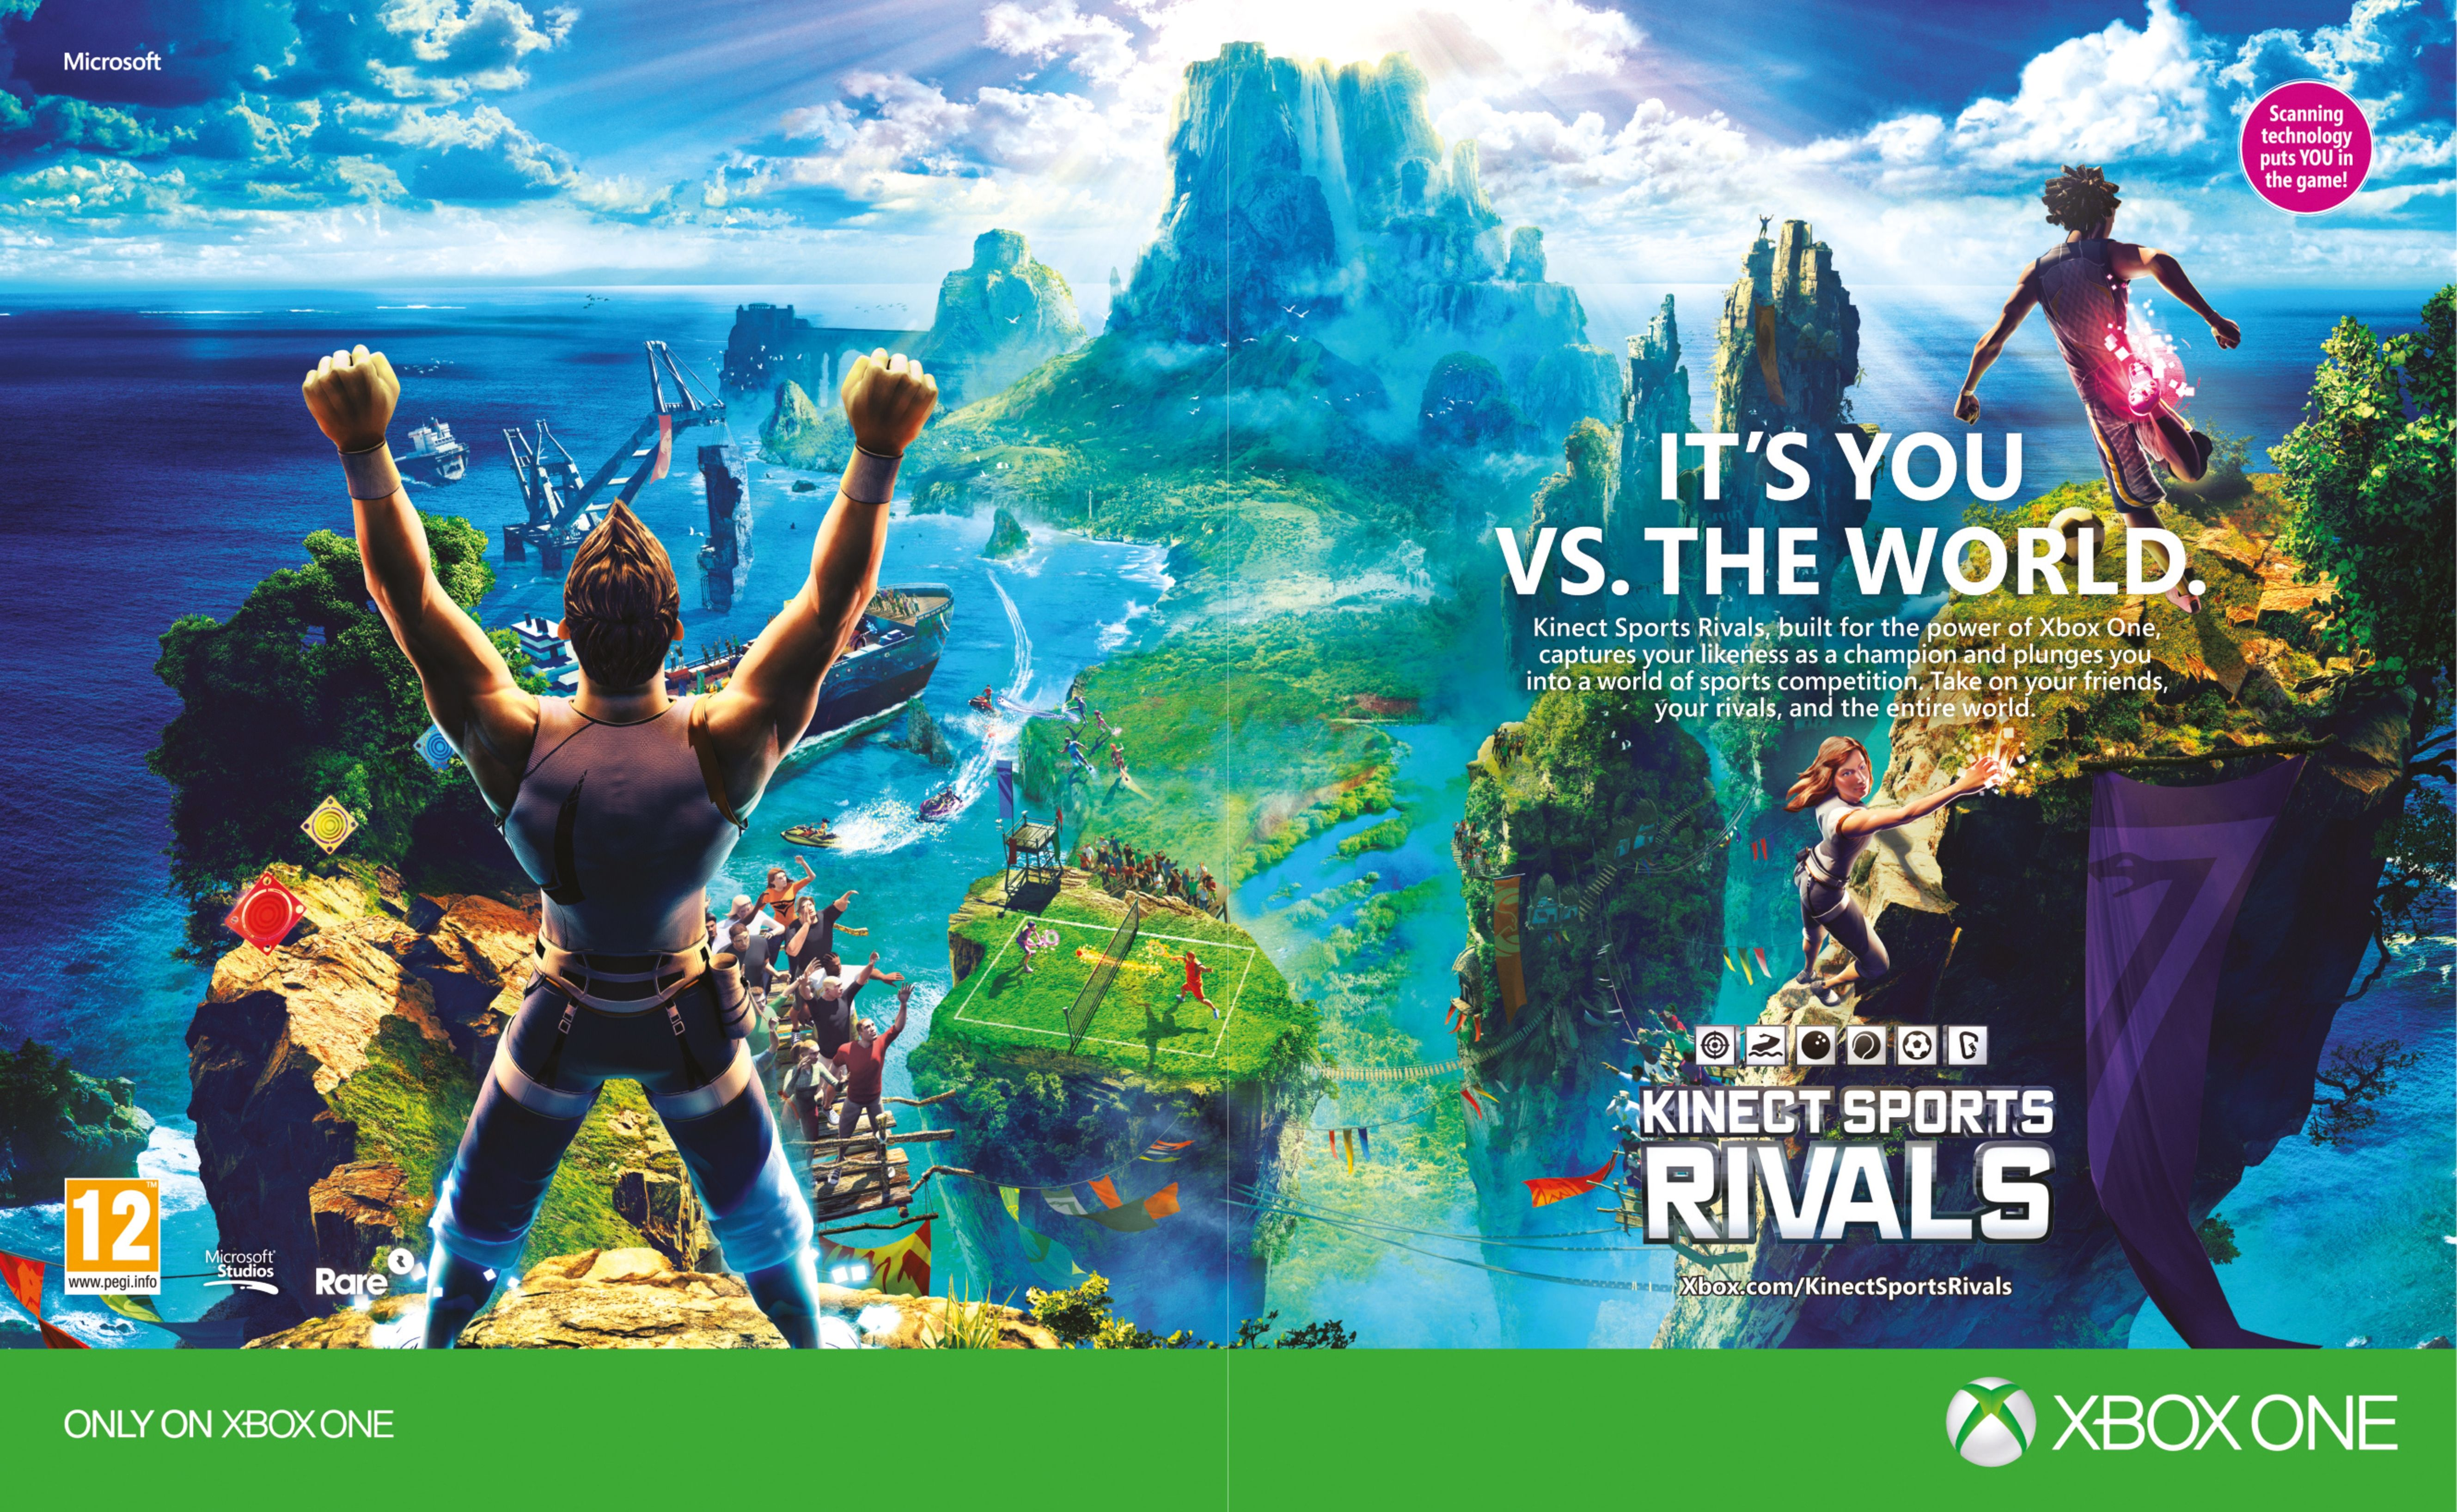 Kinect Sports: Rivals (2014) promotional art - MobyGames